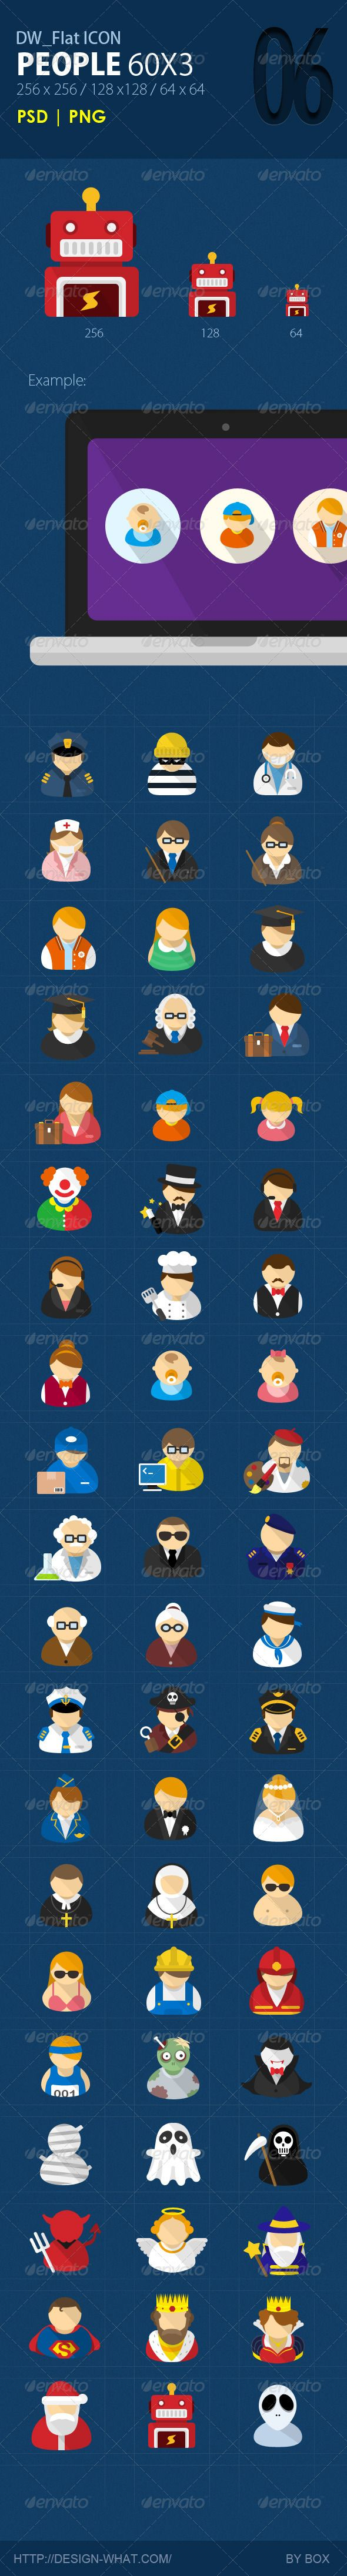 60 Flat ICONs (People) from the DesignWhat Team Flat